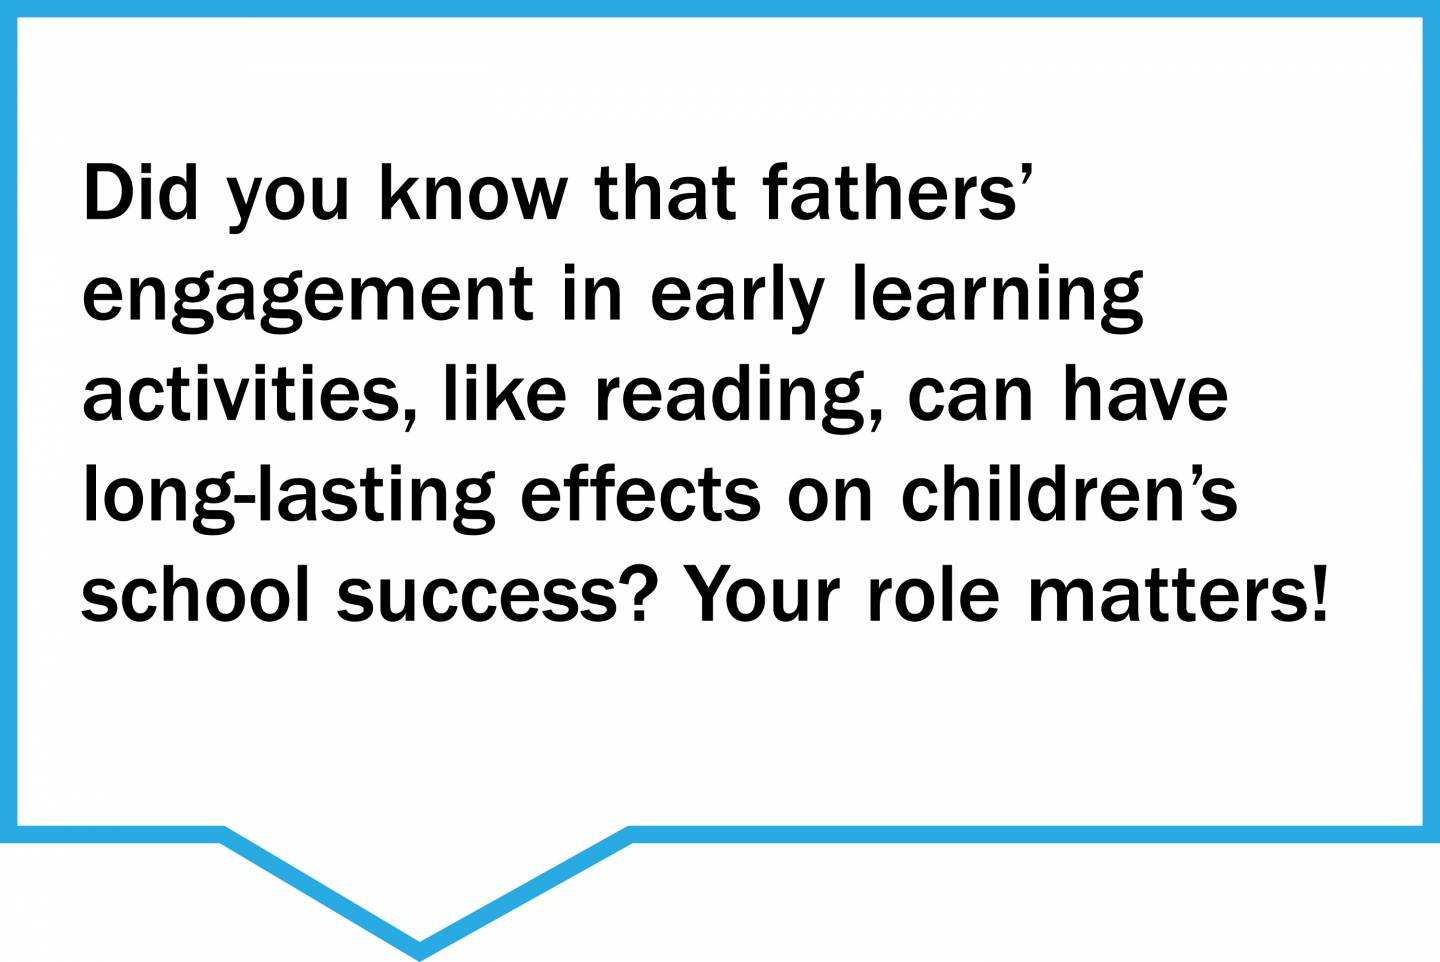 Did you know that fathers'  engagement in early learning  activities, like reading, can have long-lasting effects on children's school success? Your role matters!